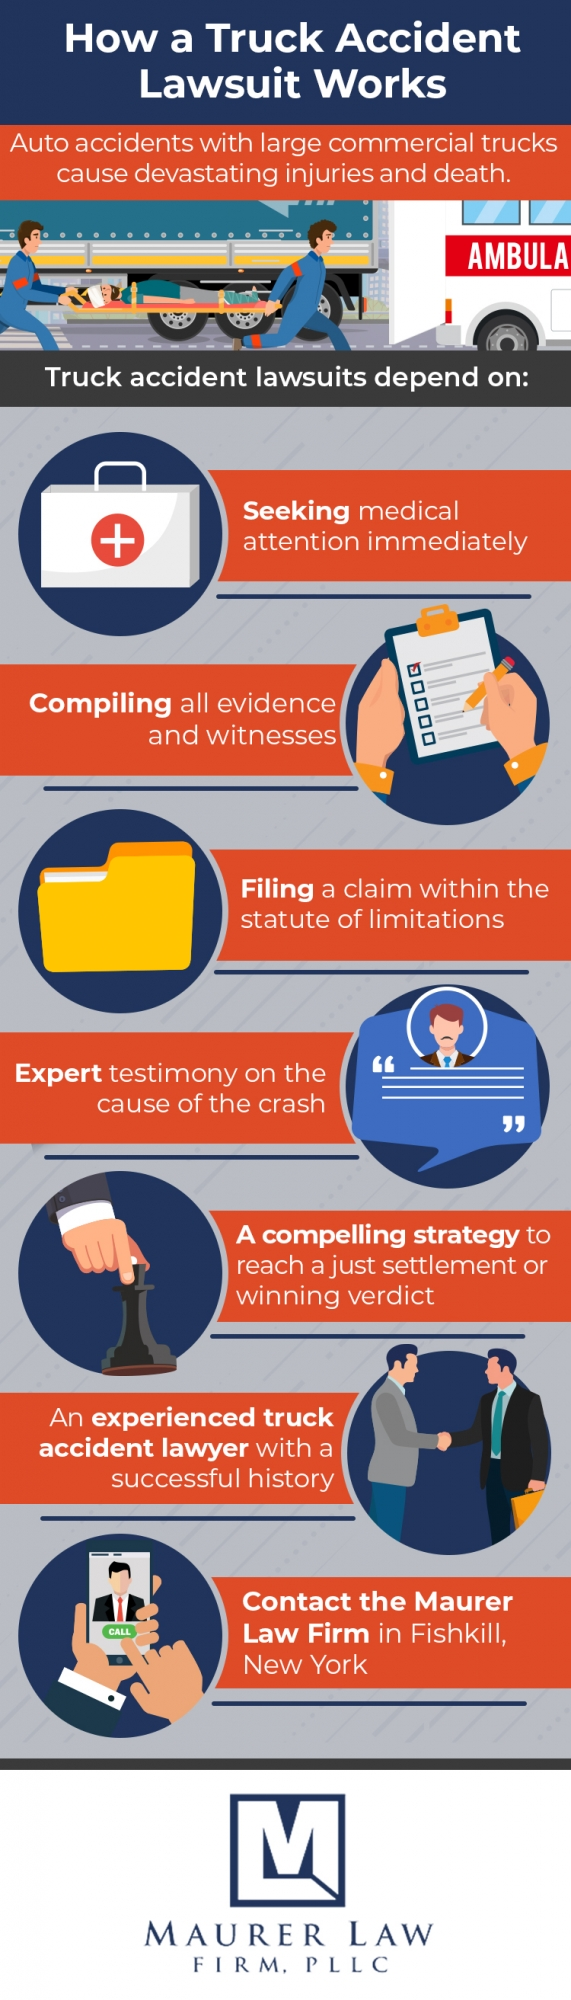 Infographic outlines the important aspects of a truck accident lawsuit